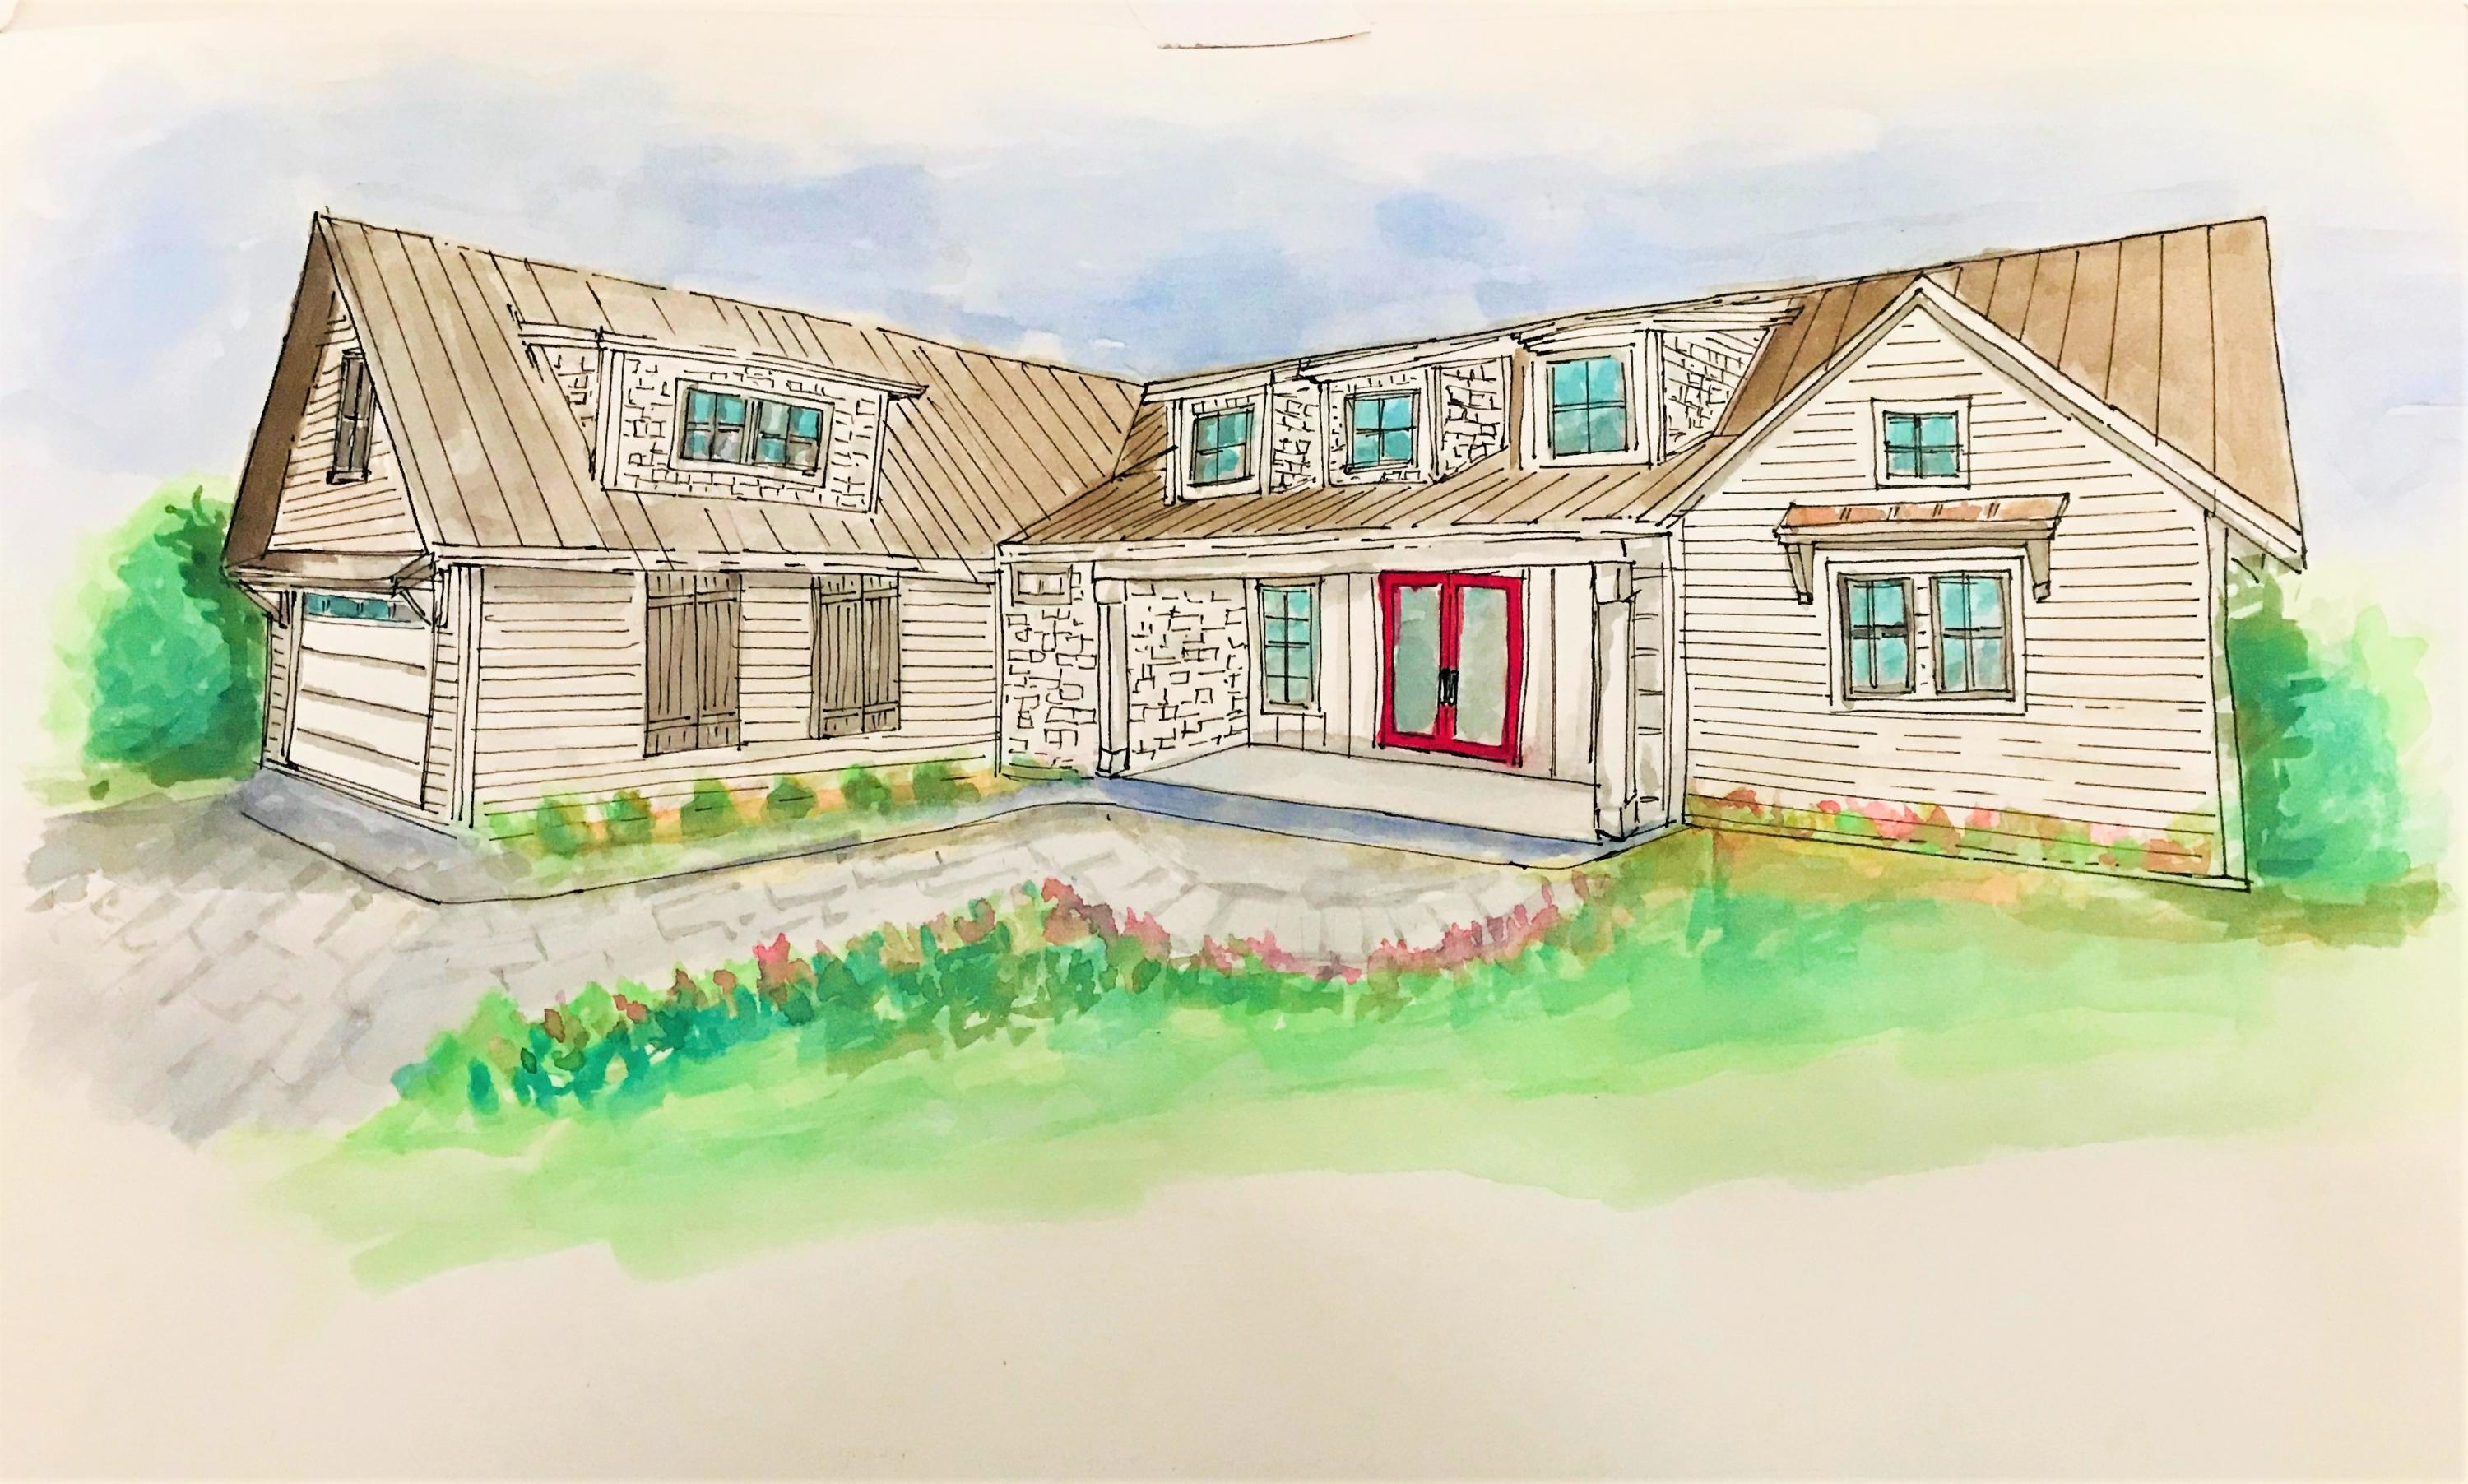 NEW CONSTRUCTION! This upscale modern farmhouse home is being built in Old Marsh Cove, a developing neighborhood off Mack Bayou Drive. Lot 8 is a corner lot, 4 bedrooms - 3 full baths.The house is designed with a large kitchen island overlooking a vaulted living room. The kitchen will be an entertainers dream; 3CM Quartz countertops, Wellborn Custom Cabinetry and a 30'' gas range.  A LARGE Master suite with walk in closet and double vanity can be found on the first floor. There is a bonus space above the garage perfect for an in home office or kids play room. The interior finishes (cabinetry, plumbing fixtures, flooring, tile, paint colors) can all be selected by the new home owners if the home is presold) Additional features include tankless water heater, neighborhood dock & walk in pantr